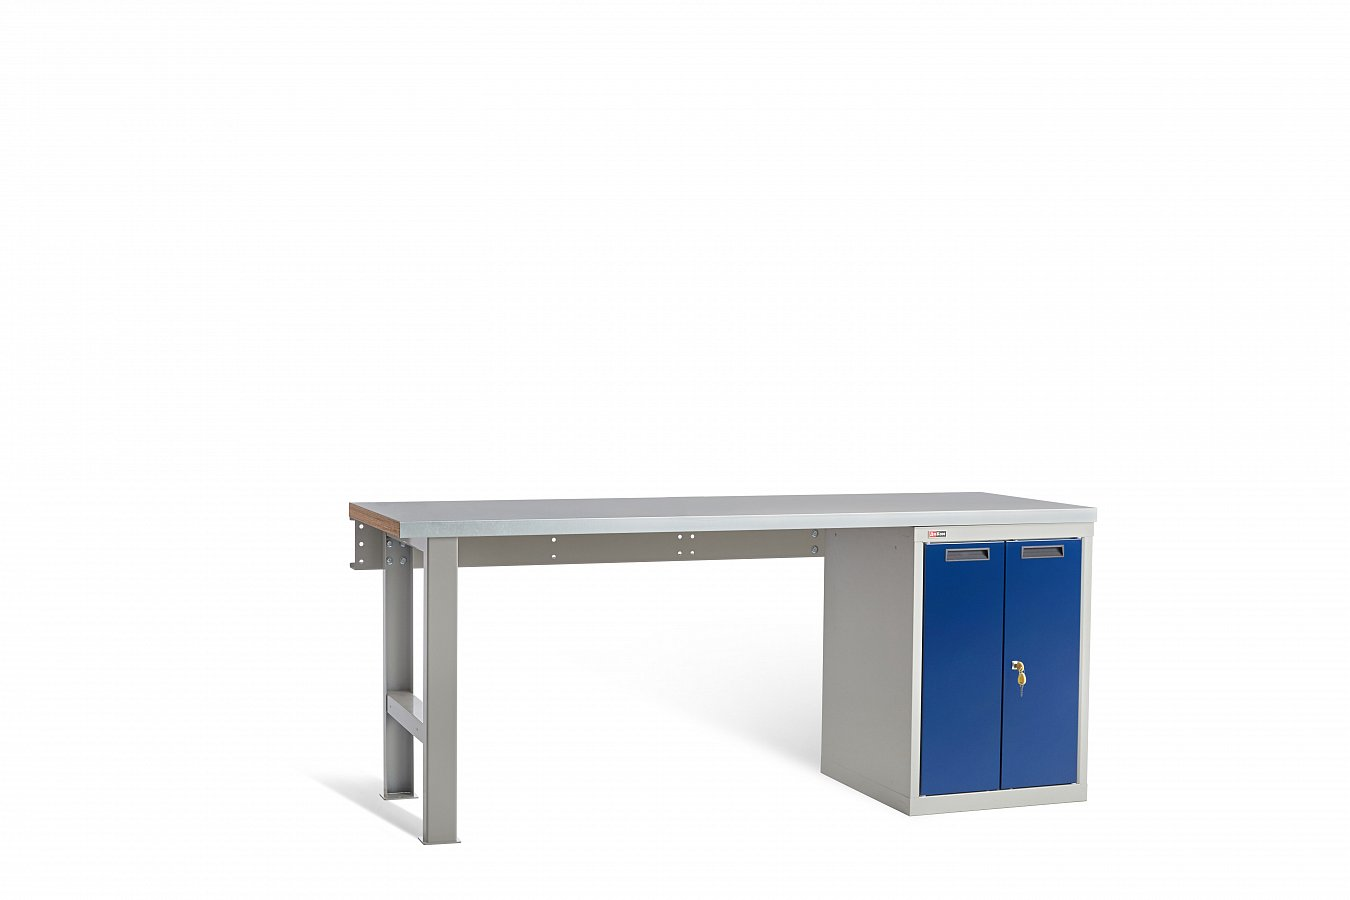 DiKom Workbench VS-200-03 (6)